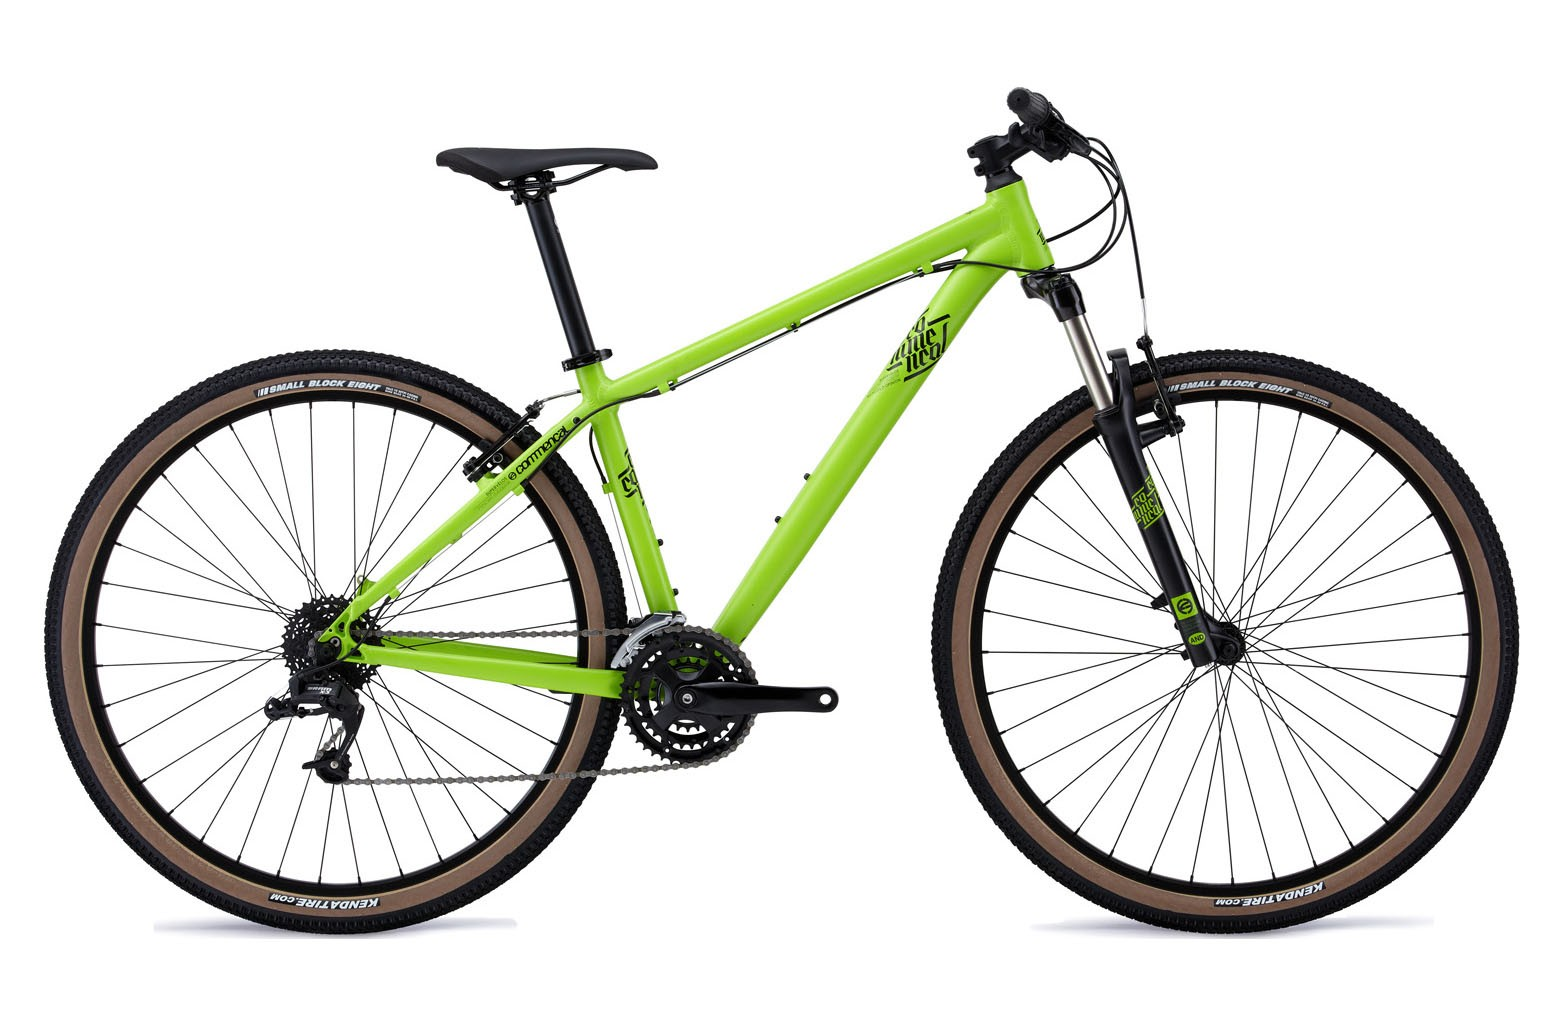 Горный велосипед Commencal El Camino VB 29 (2013)